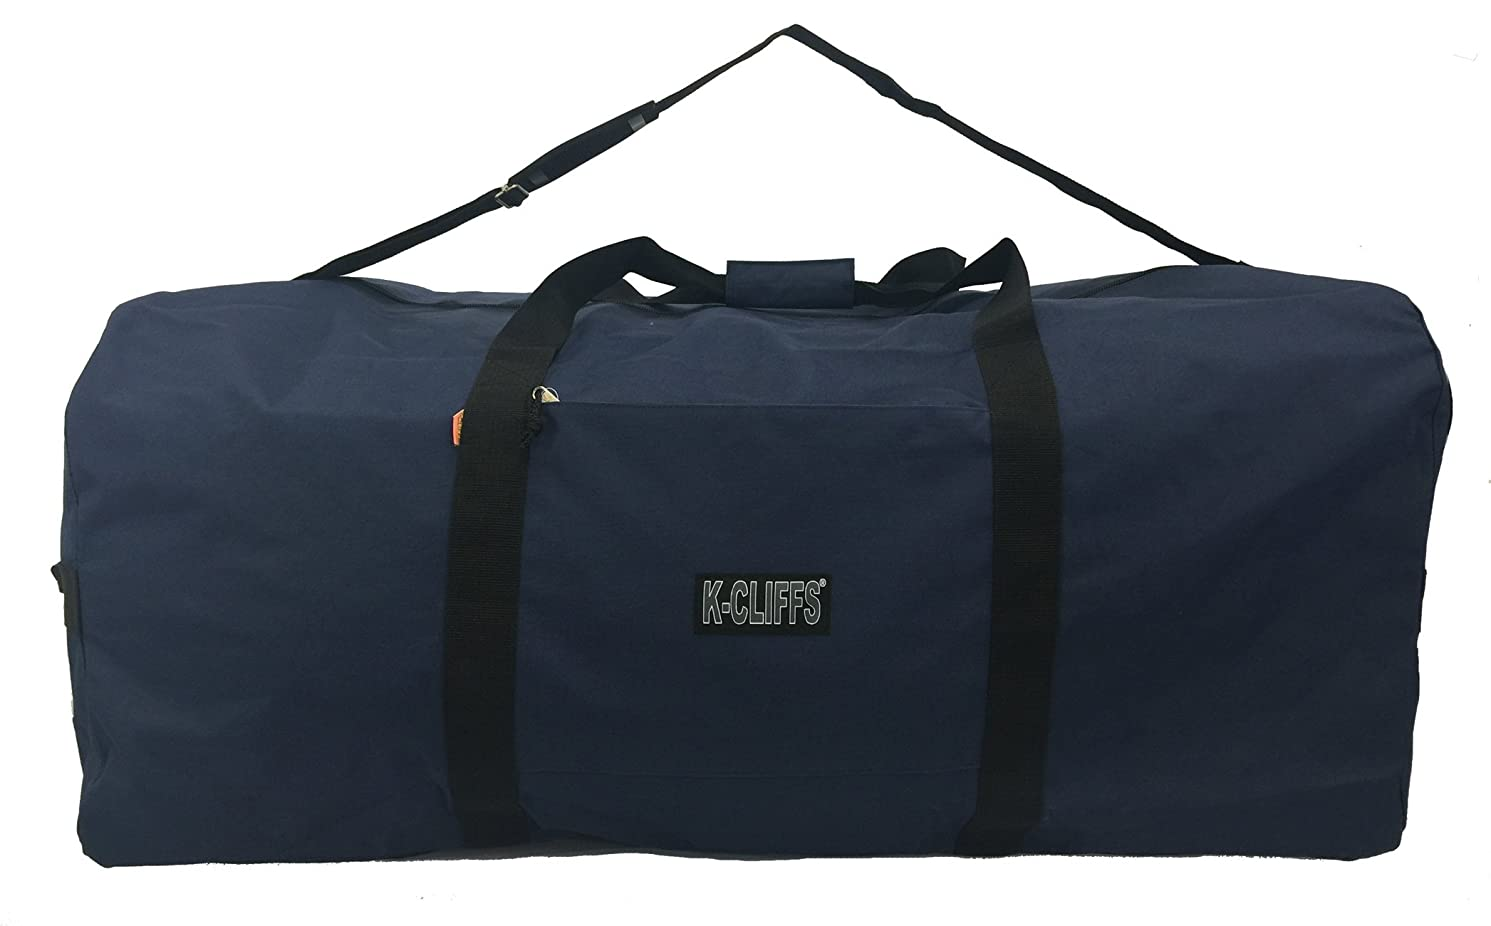 Heavy Duty Cargo Duffel Large Sport Gear Drum Set Equipment Hardware Travel Bag Rooftop Rack Bag (42